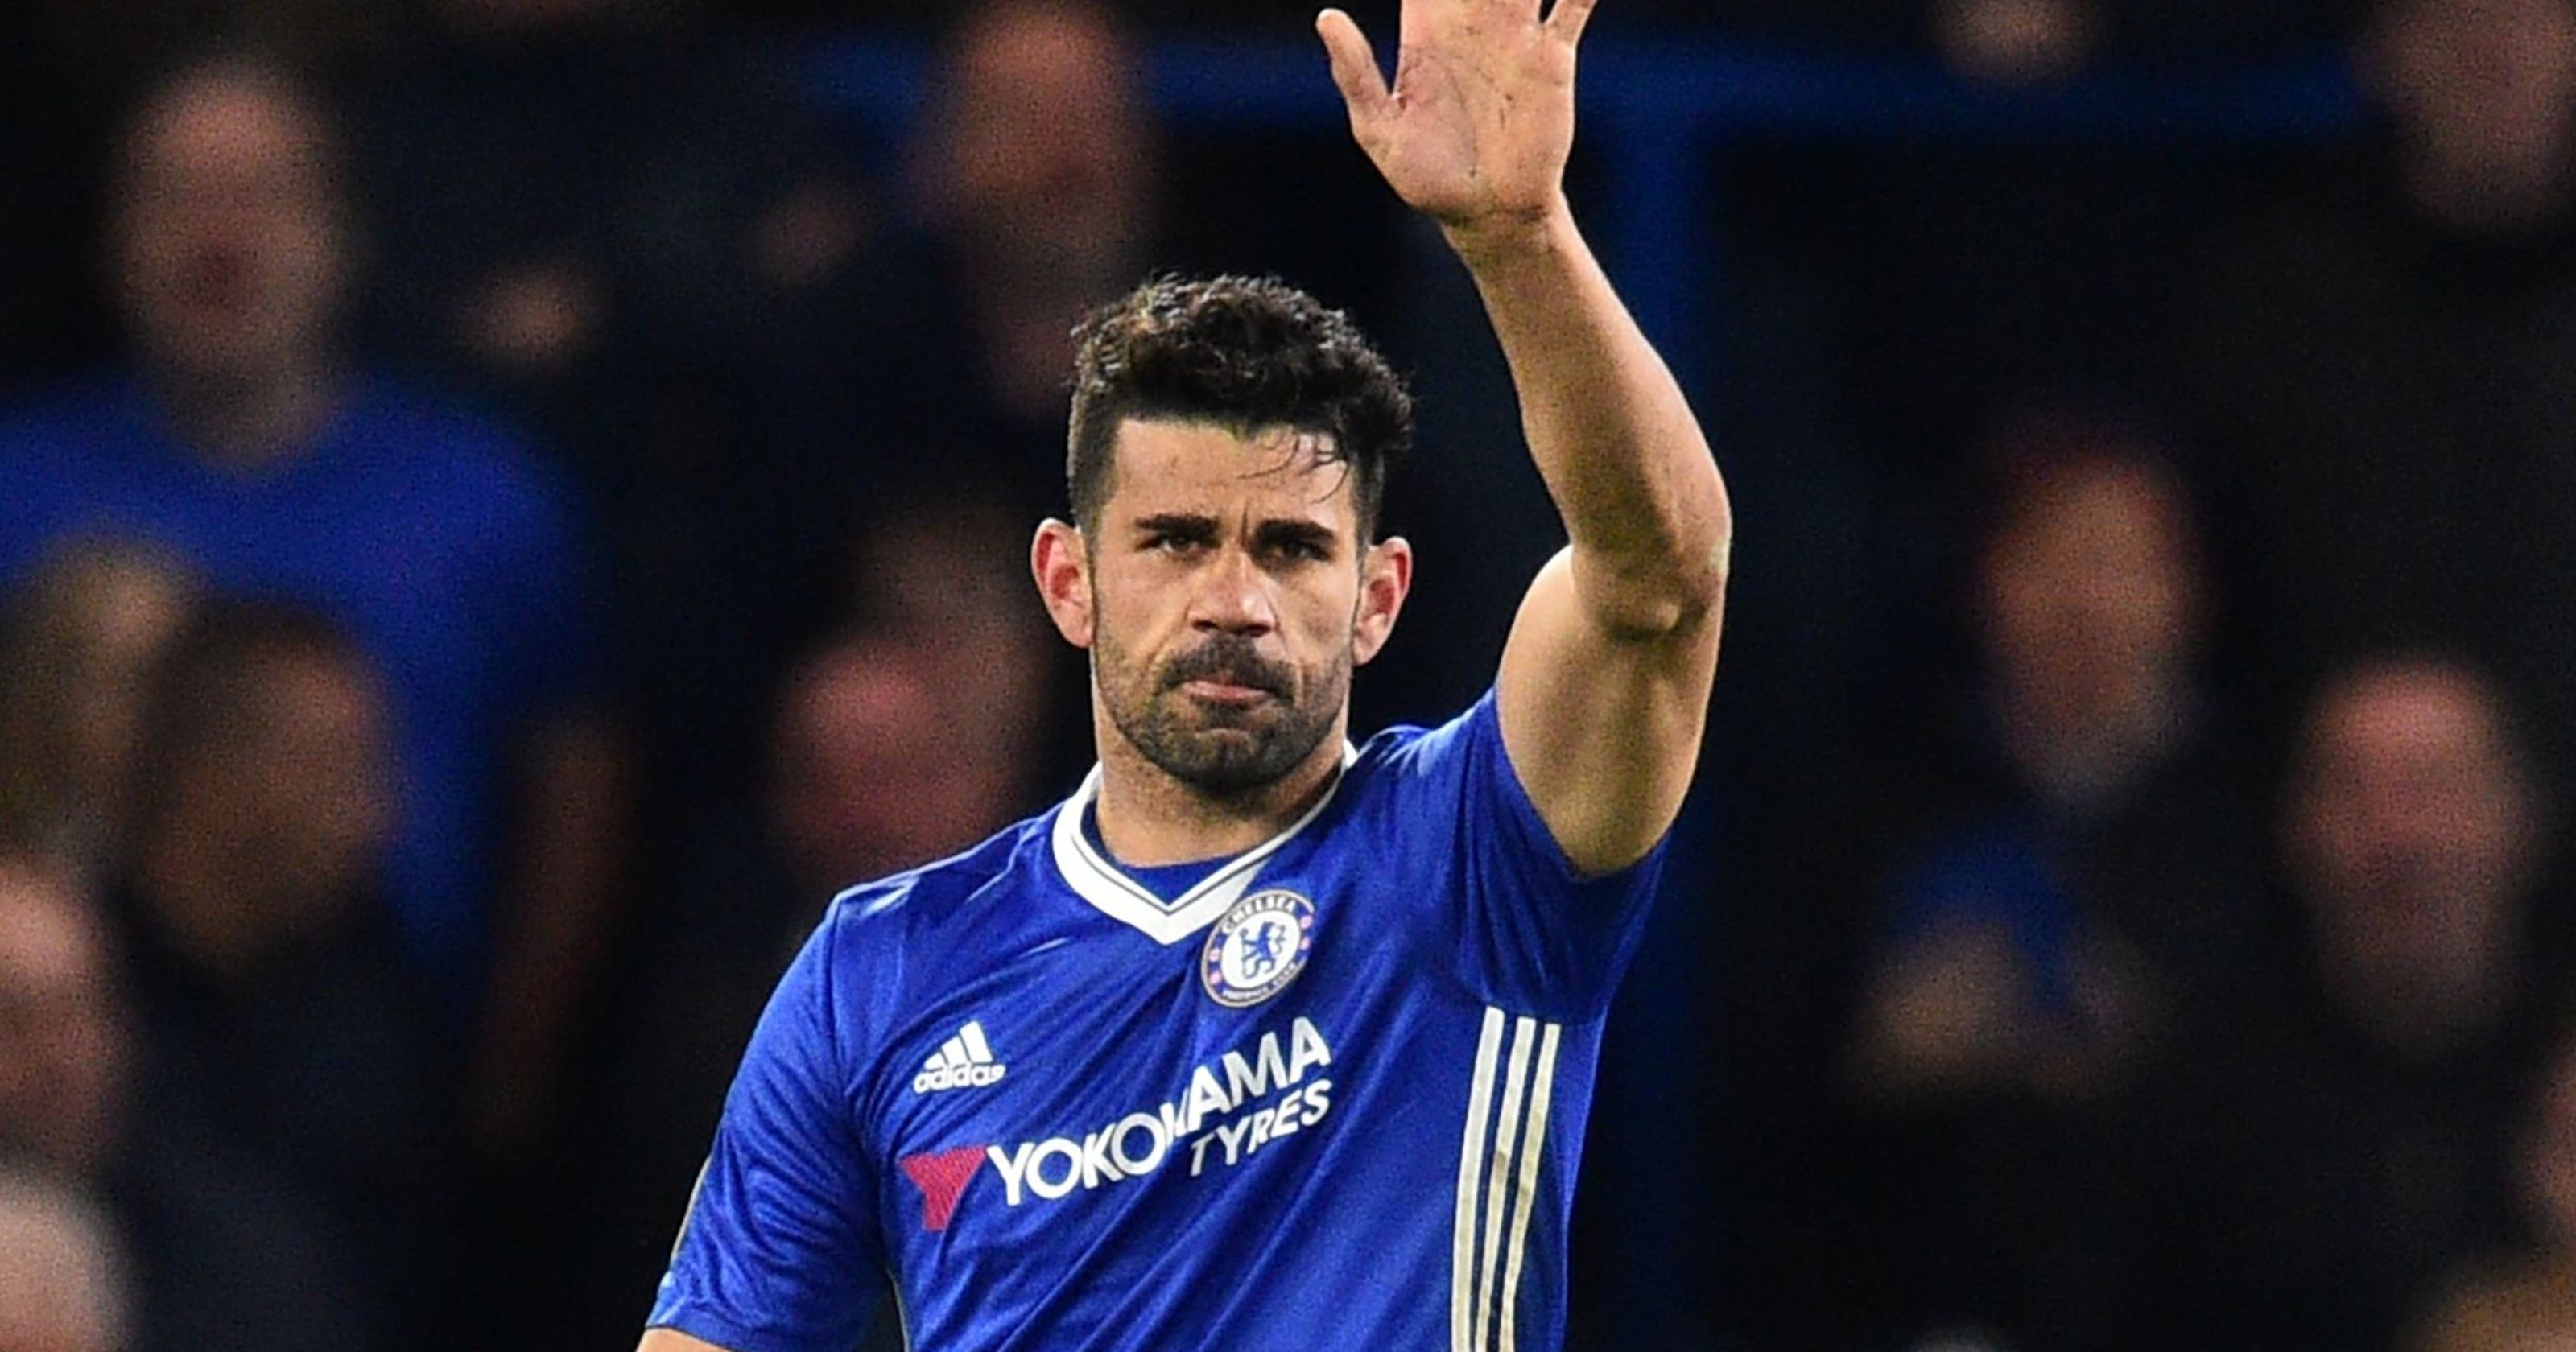 diego costa dp profile pictures for whatsapp facebook